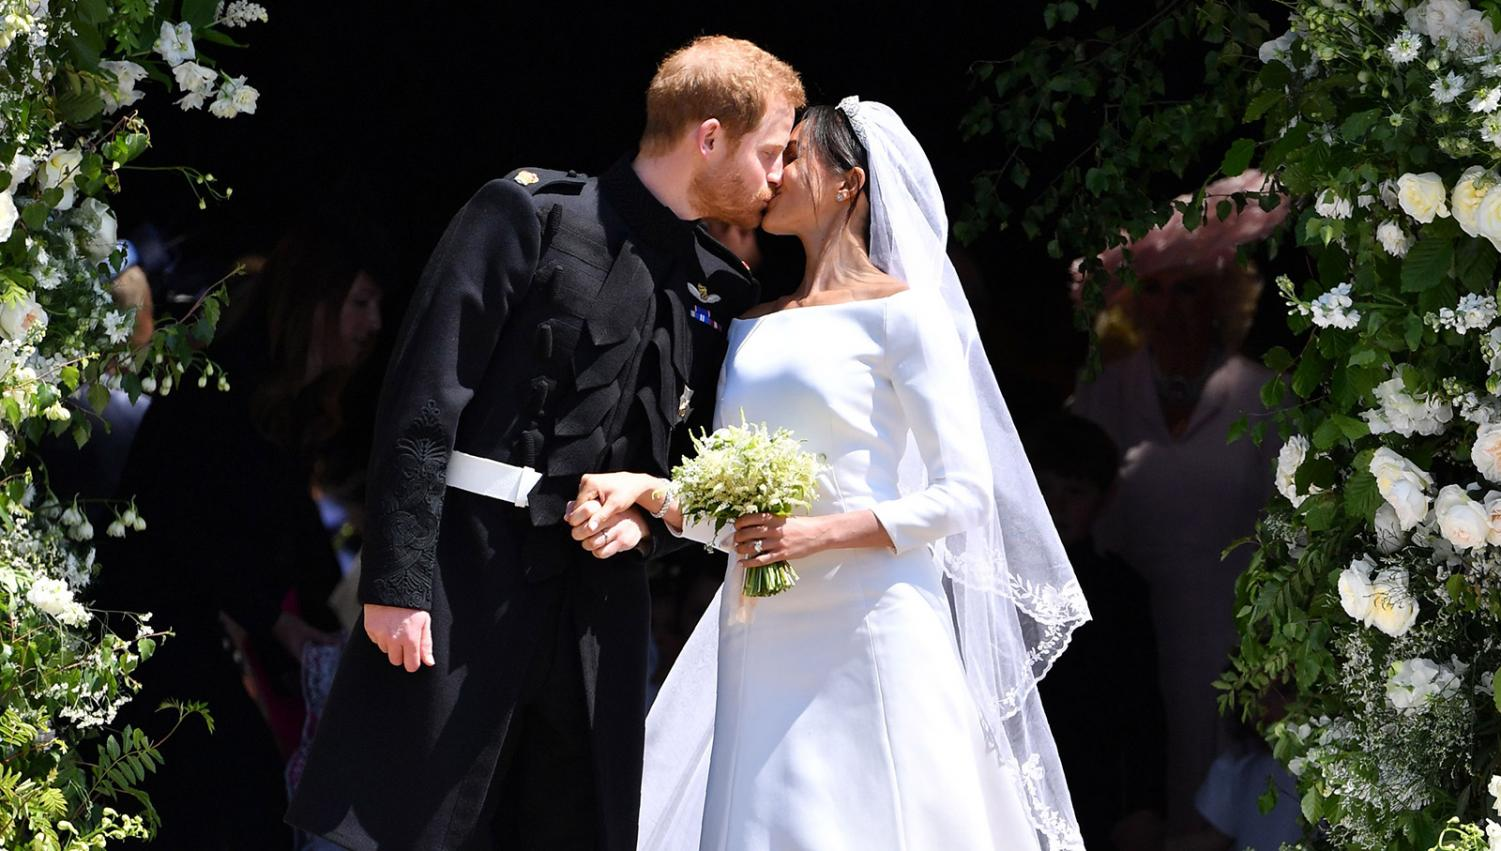 Meghan Markle and Prince Harry seal the deal at St. George's Chapel at Windsor Castle at noon on May 19 the same time that the Port Washington Public Library hosted its viewing event.